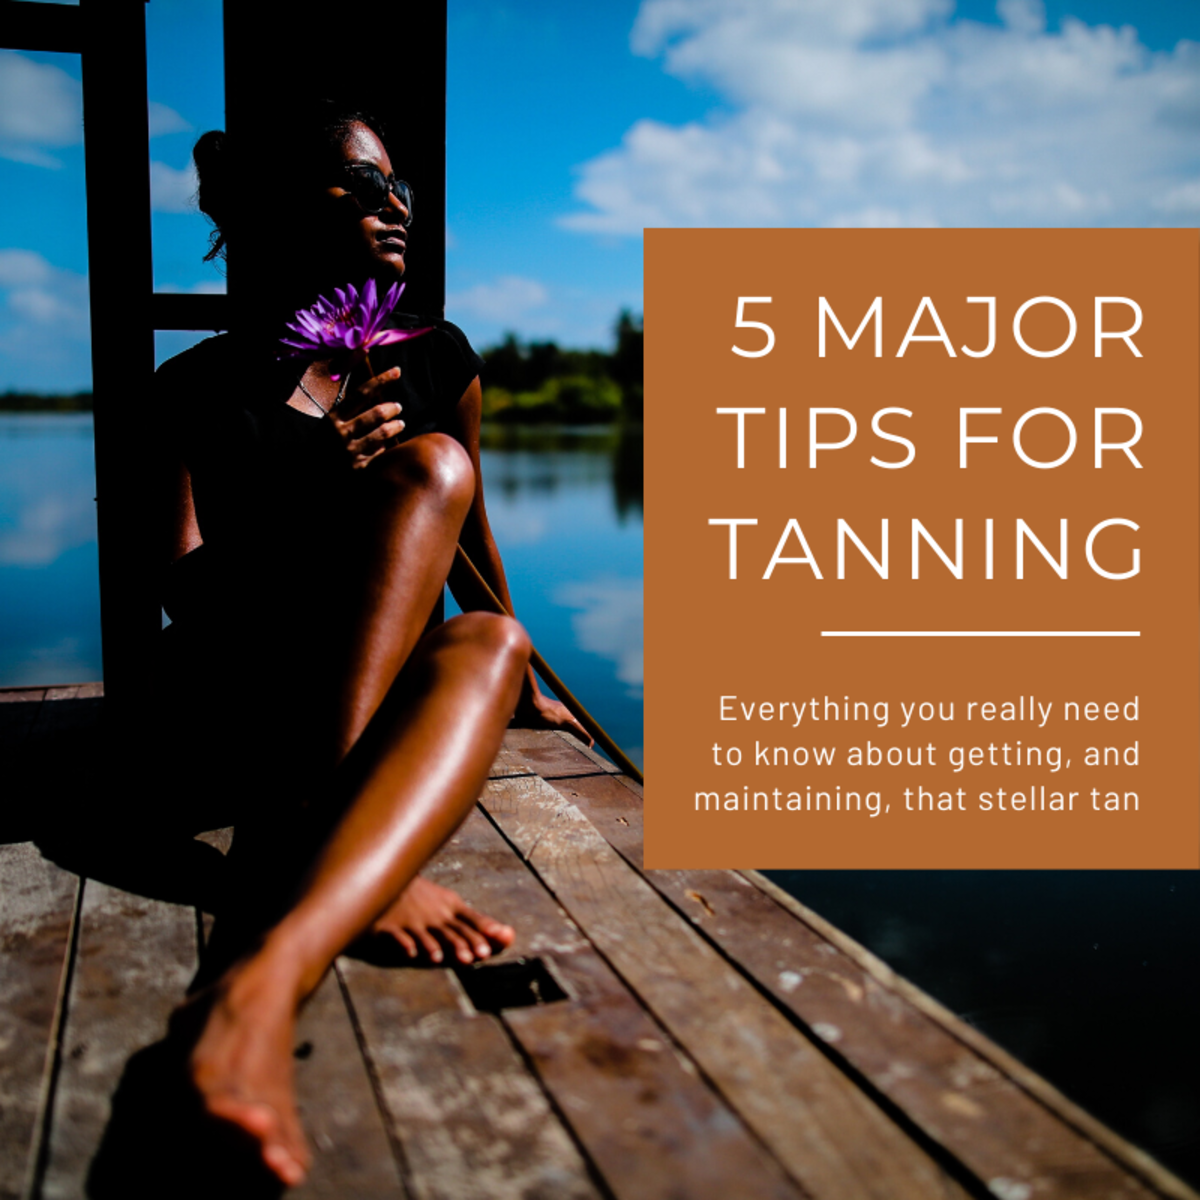 Everything There Is to Know About Getting a Better Tan